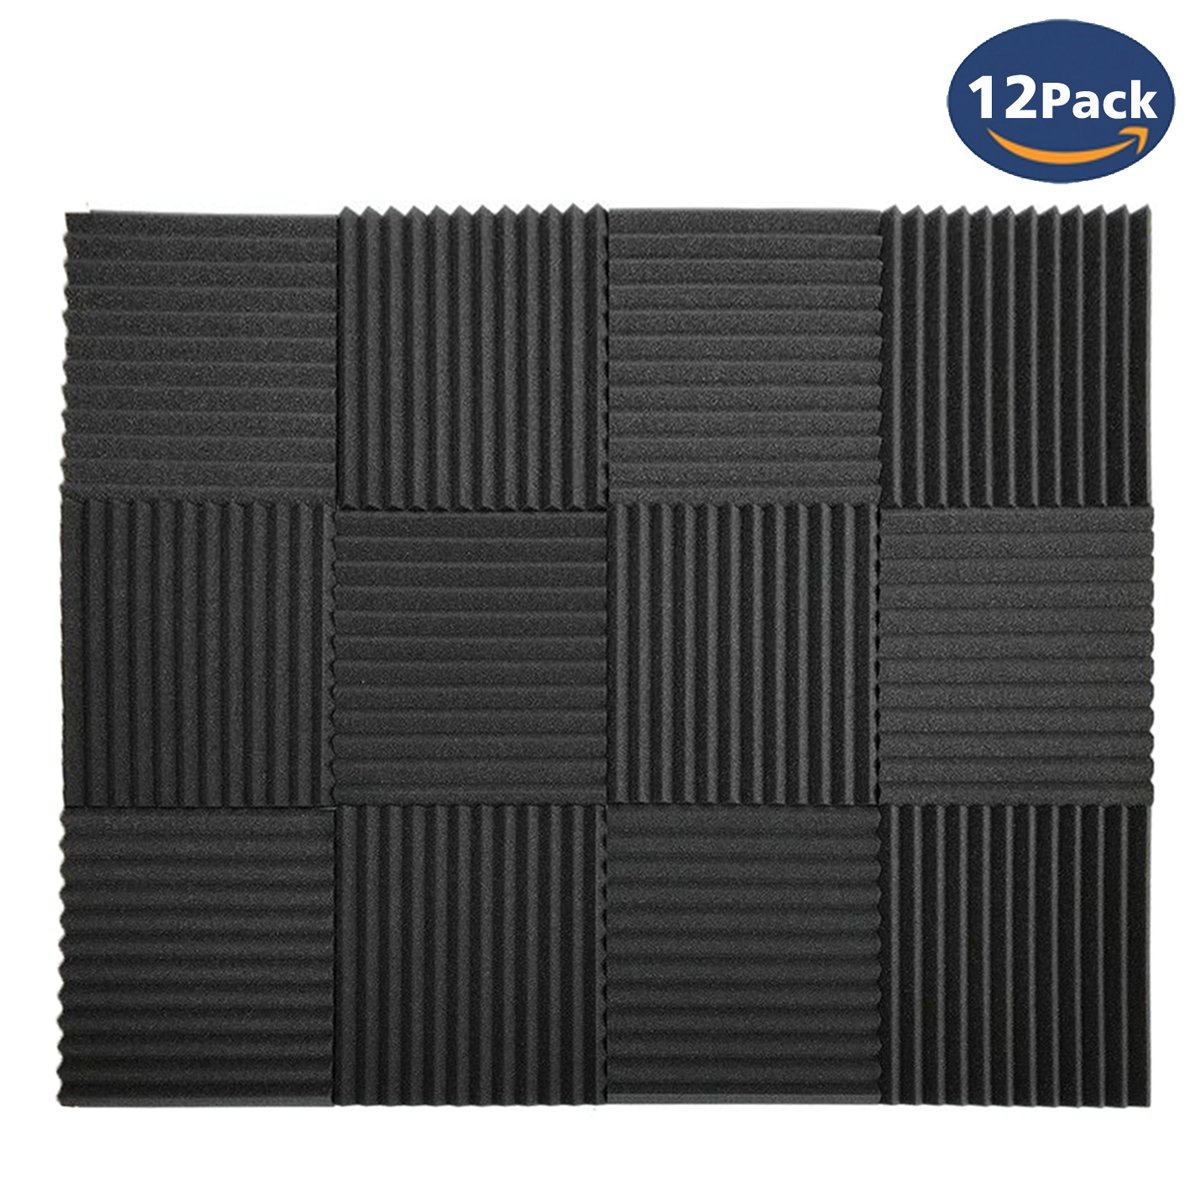 "12 Pack Set Acoustic Panels, Acoustic Foam Panels, Studio Wedge Tiles, Sound Panels wedges Soundproof Sound Insulation Absorbing 1"" X 12"" X 12"" CloverTale"